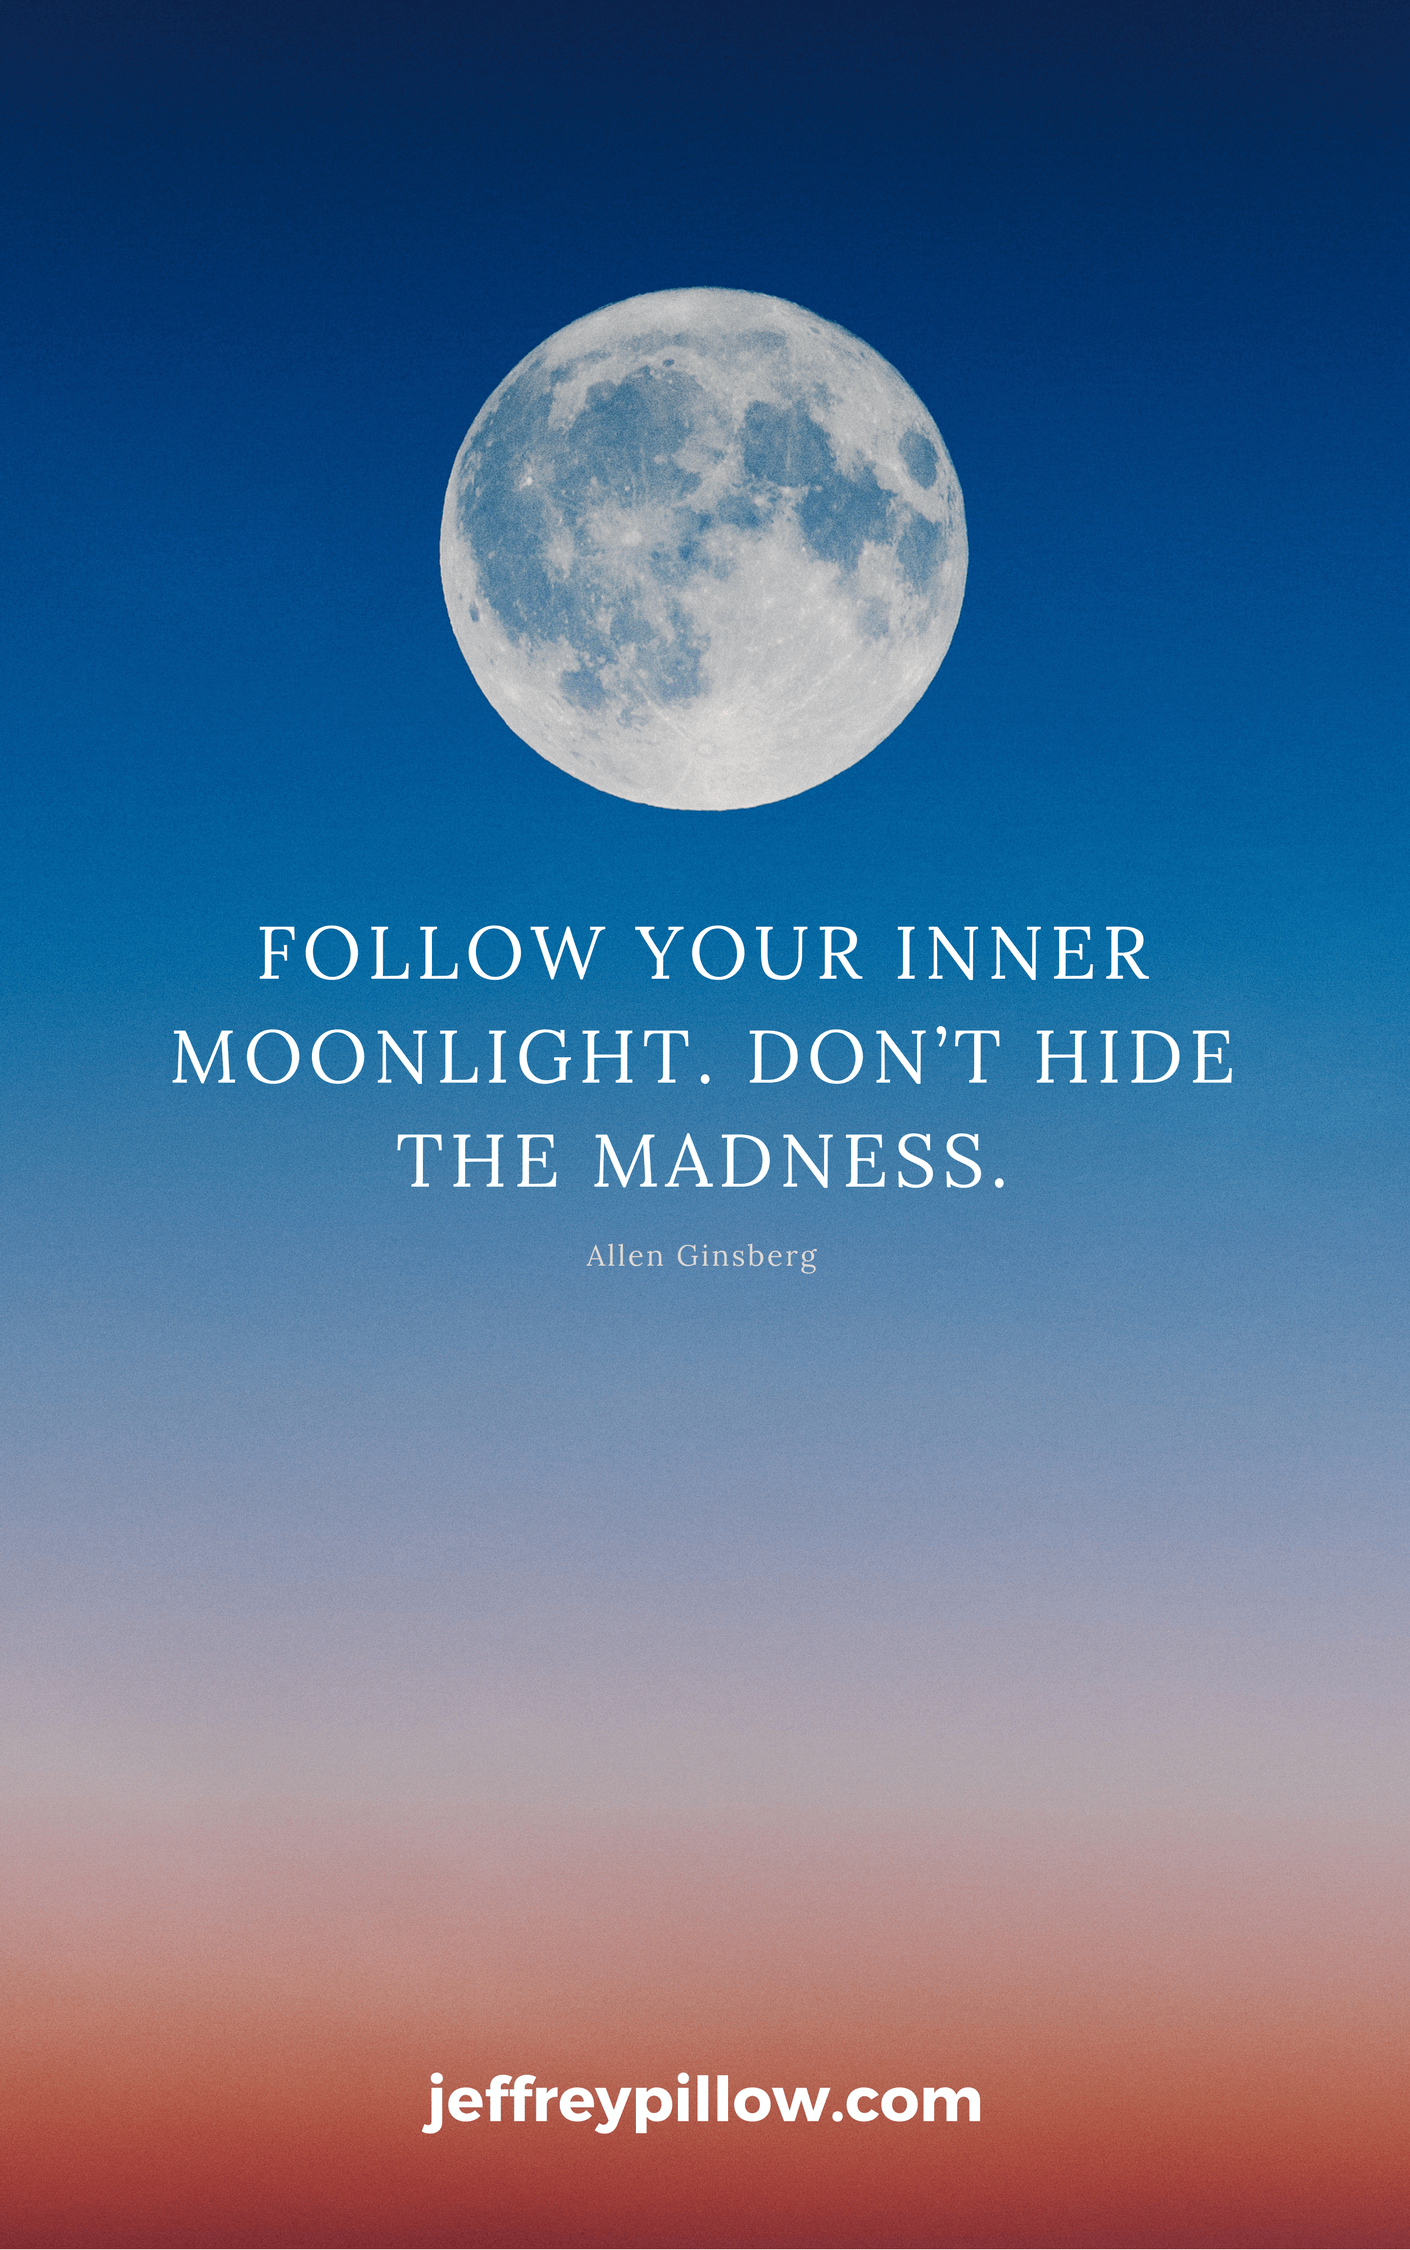 """Allen Ginsberg on telling your own story: """"Follow your inner moonlight. Don't hide the madness."""""""